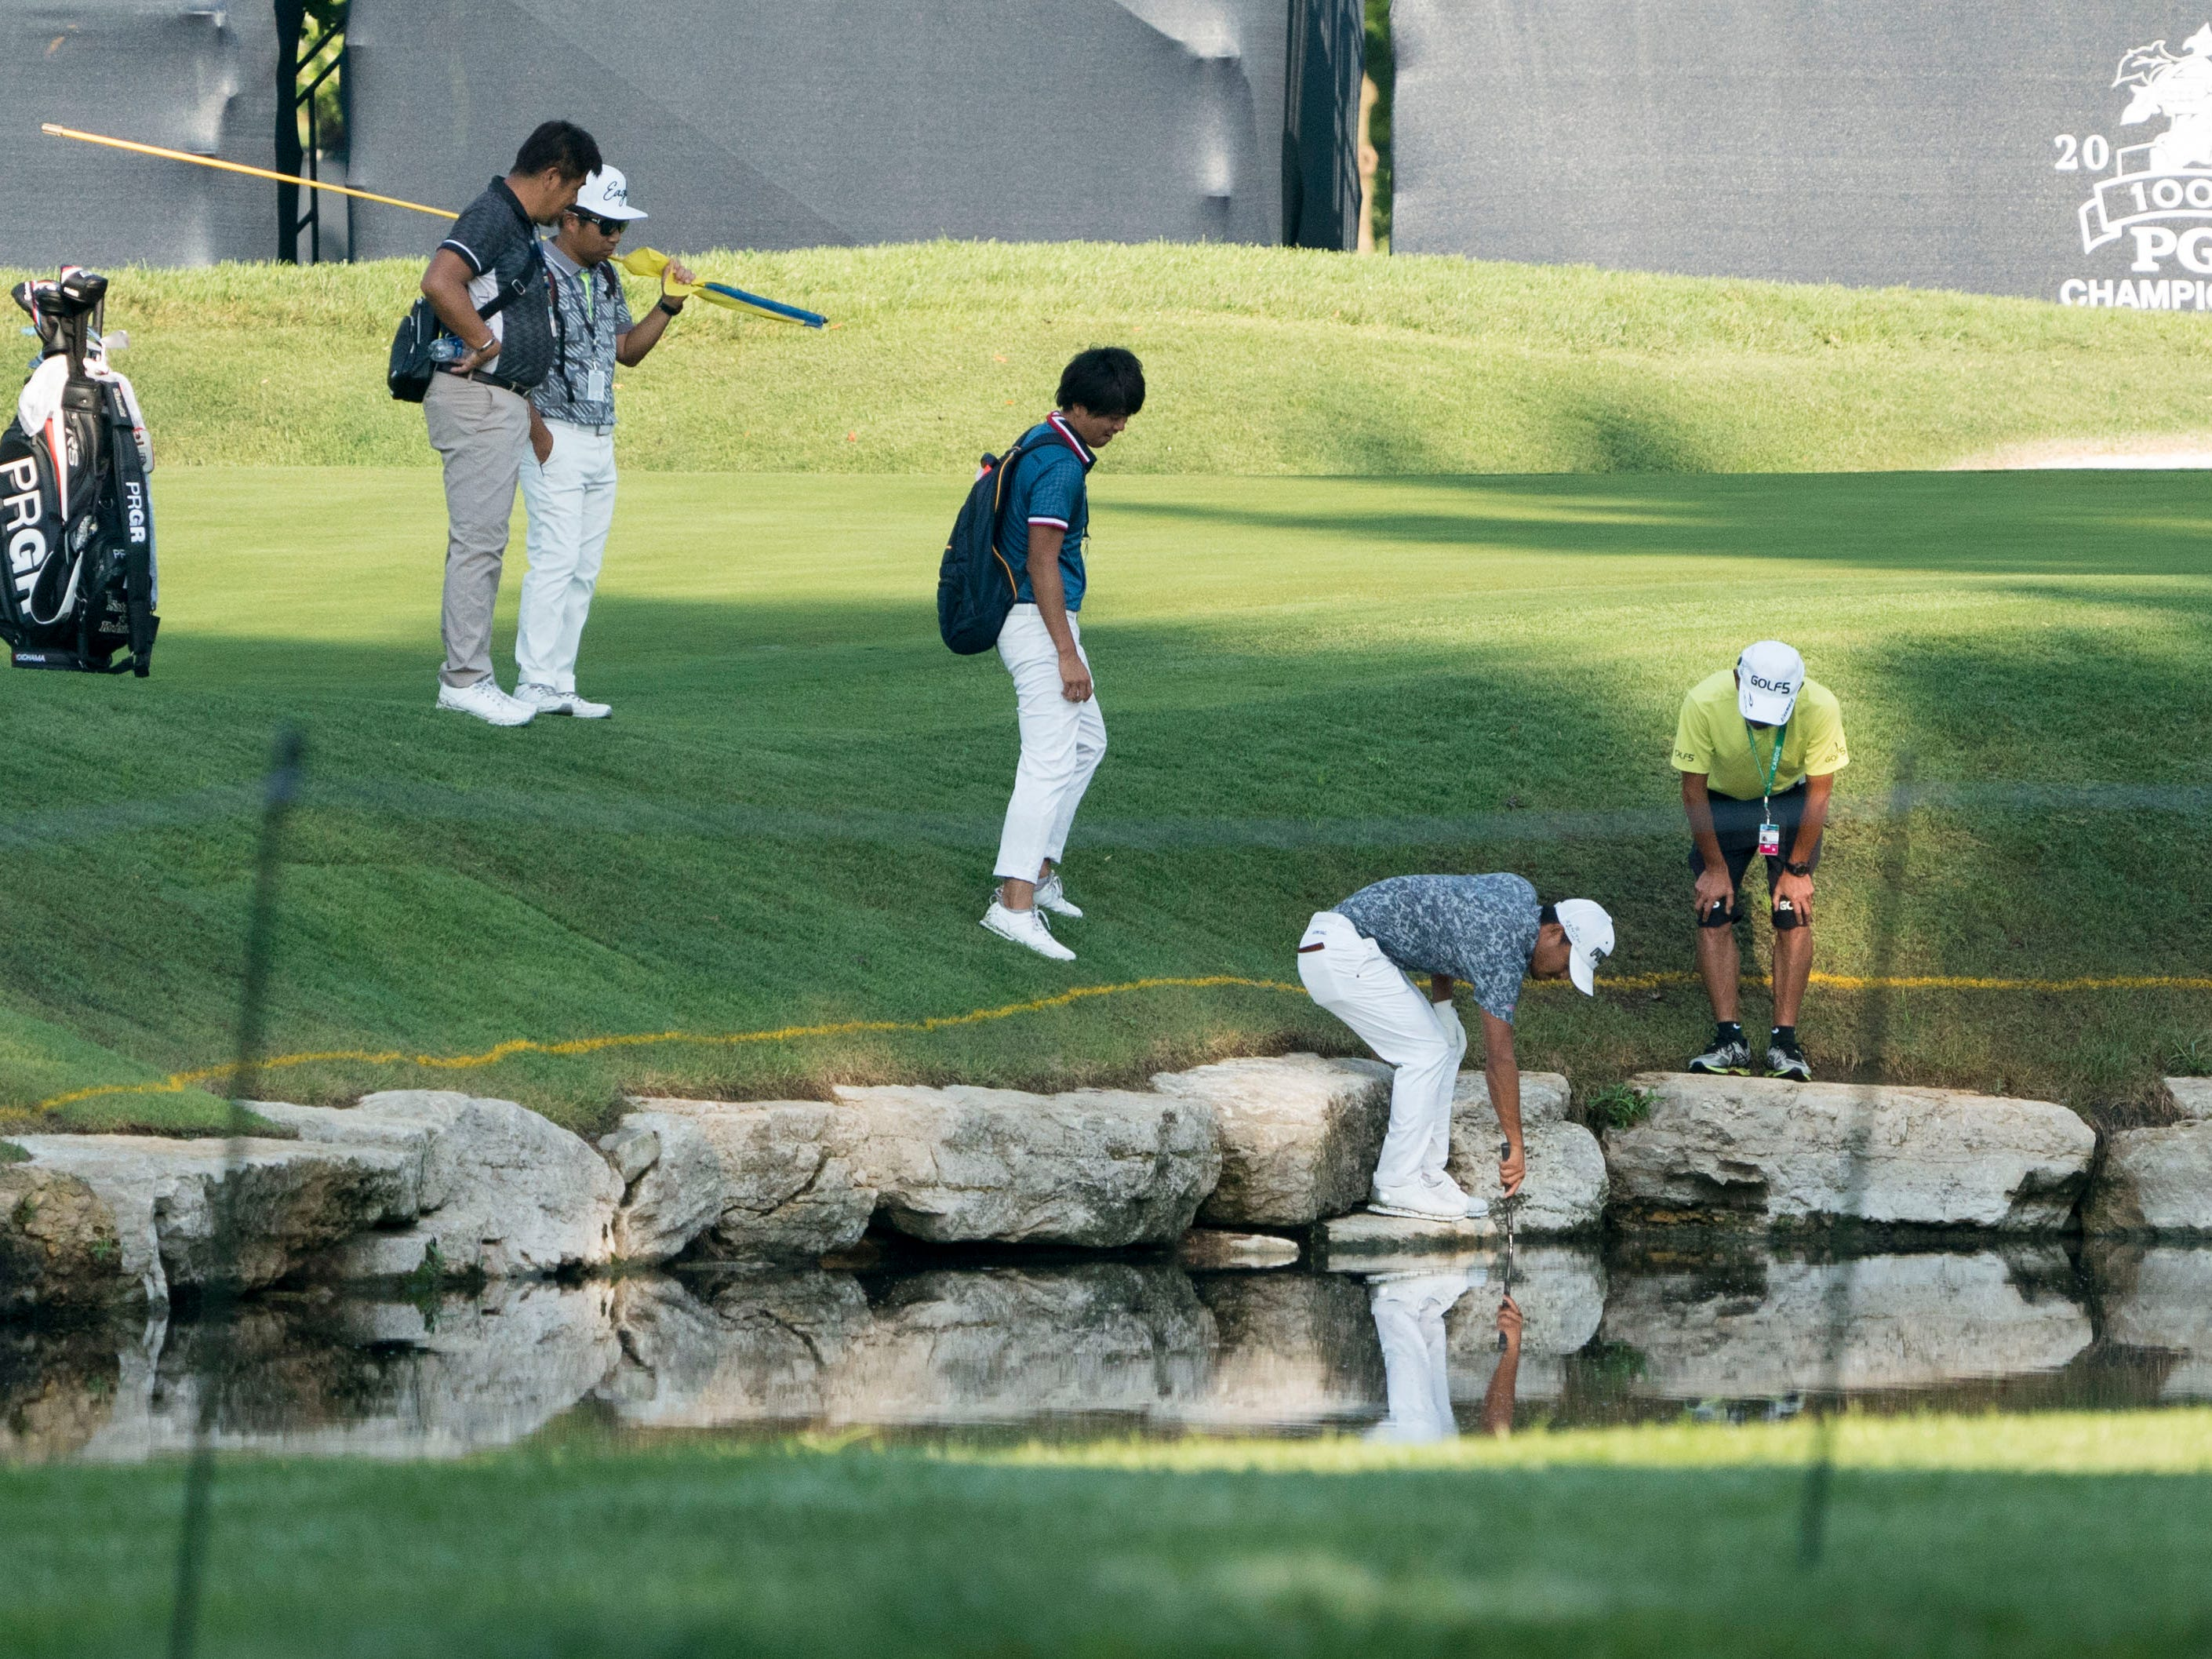 Satoshi Kodaira reaches for his golf ball in the water on the sixth hole.